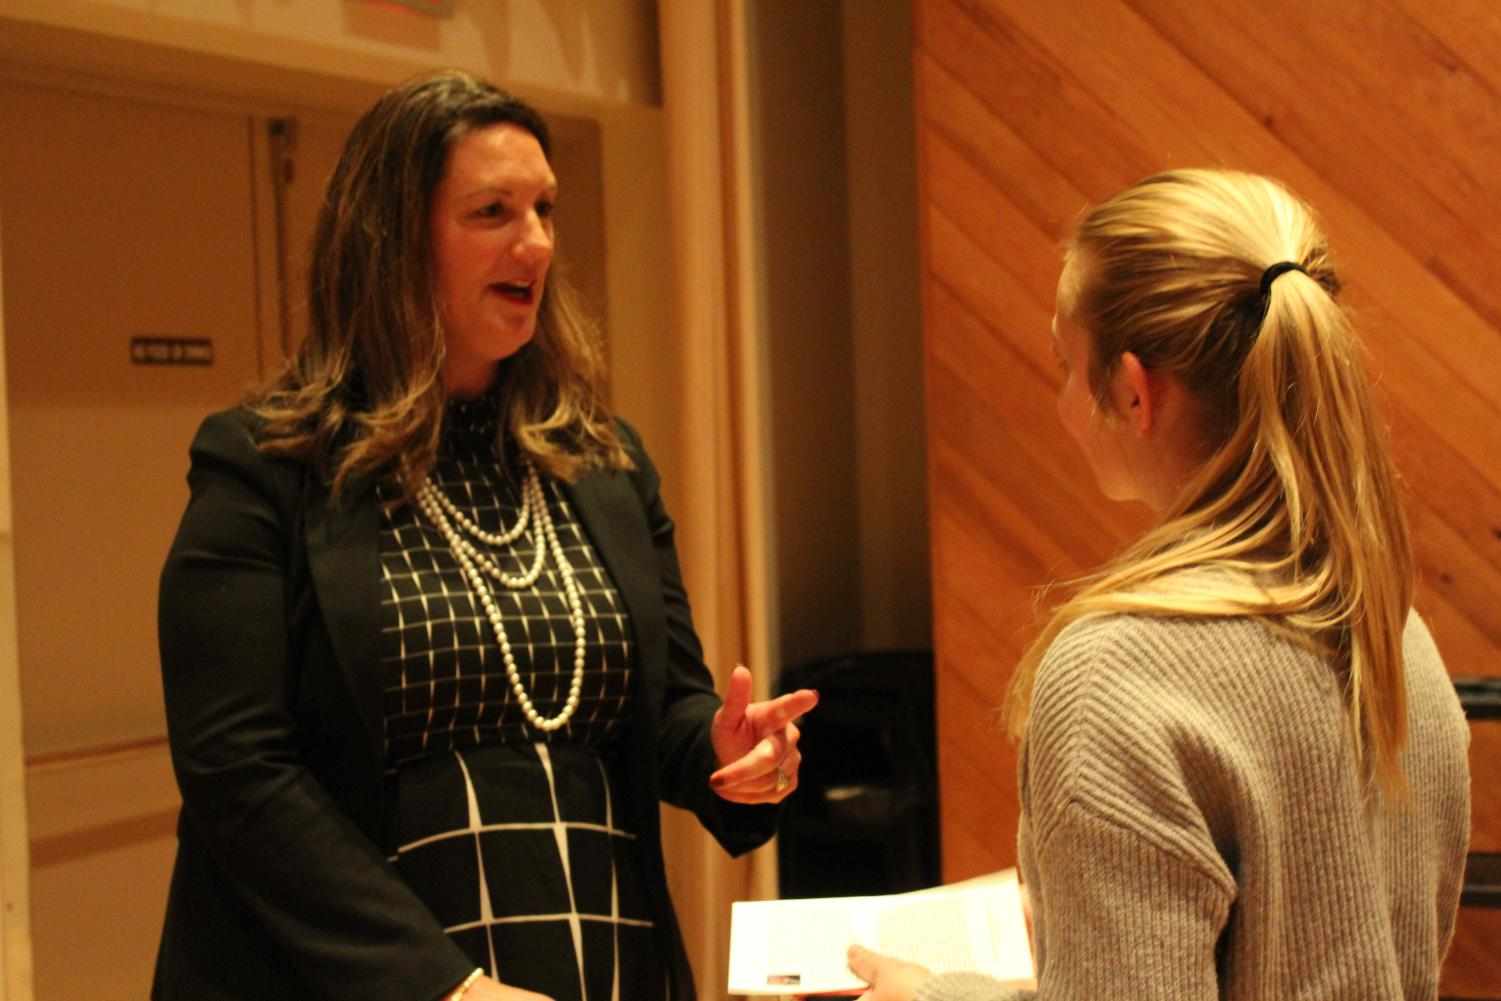 Anjela A. Shutts ('93) connects with Cassidy Kahl ('21) at the reception following the discussion.